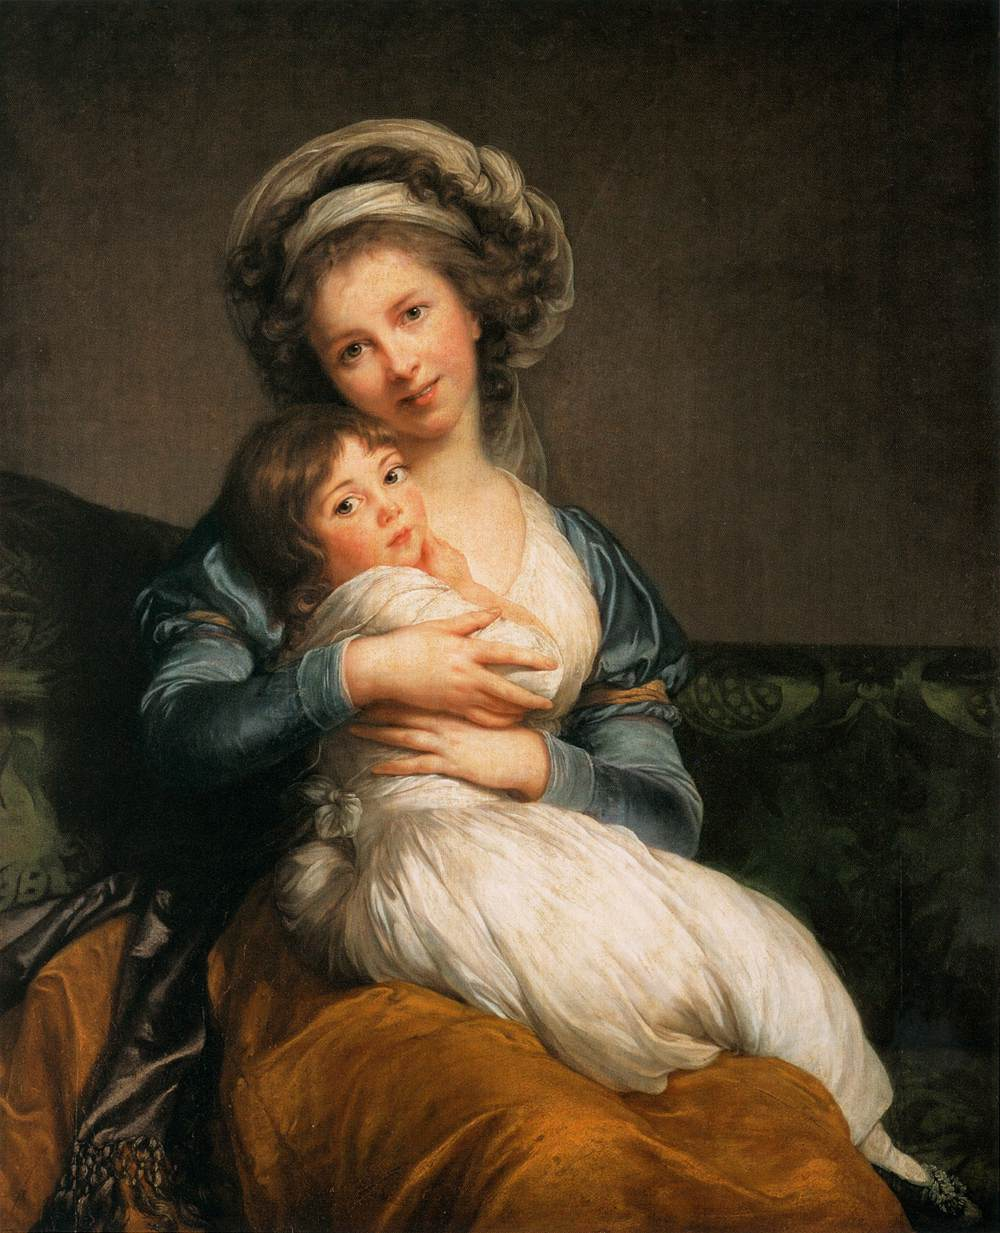 Elisabeth Vigée Lebrun, Self-Portrait with her Daughter, Julie, 1786, oil on panel, Musée du Louvre